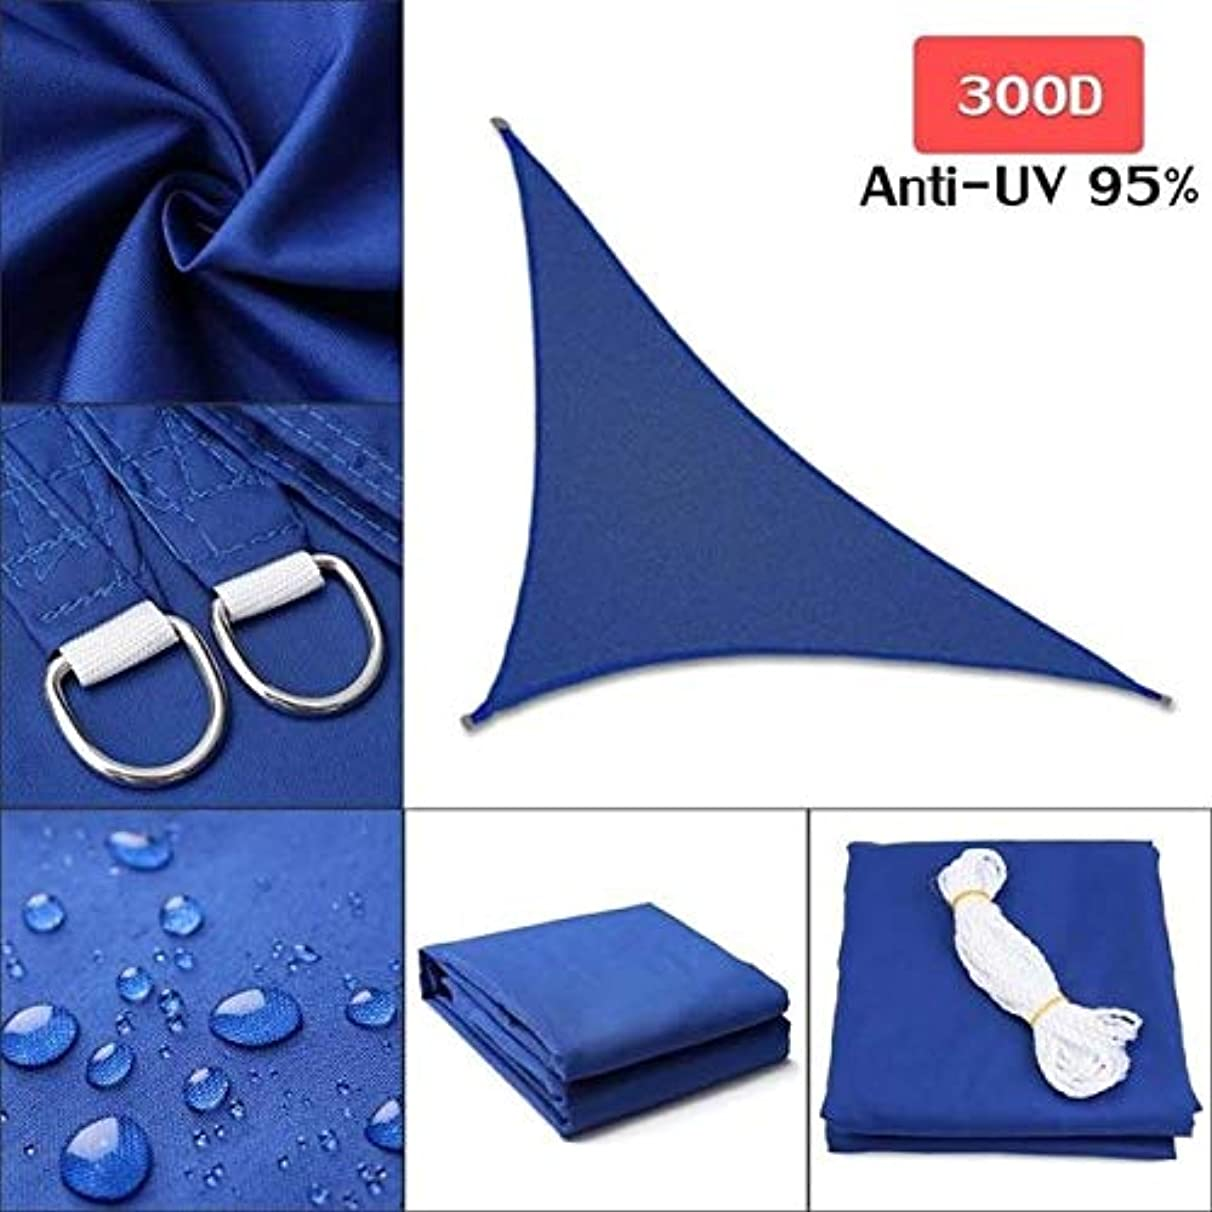 DN SUPPLY 280GSM/300D HDPE Right Triangle Awning Shade Sail Sun Outdoor Waterproof Sun Shade Sail Garden Patio Pool Camping Picnic Tent